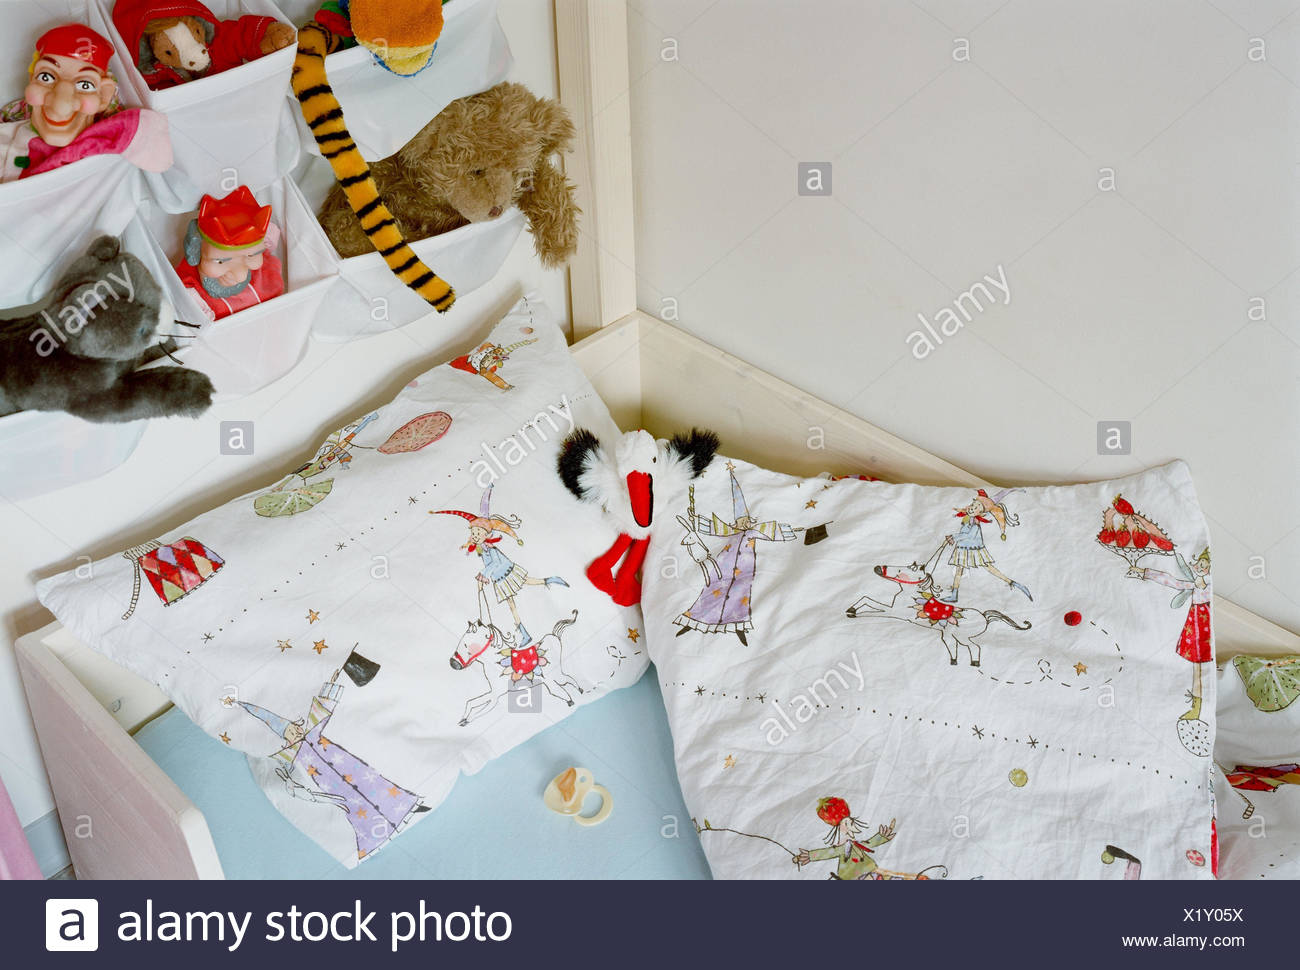 Children's rooms, bed, dummy, wall, little hanging eta, soft animals, rooms, child, cot, pillow, ceiling, wall, pouches, hang, toys, toys figures, Kasperle, king's figure, figures, soft toys, fall asleep, order, deserted, - Stock Image